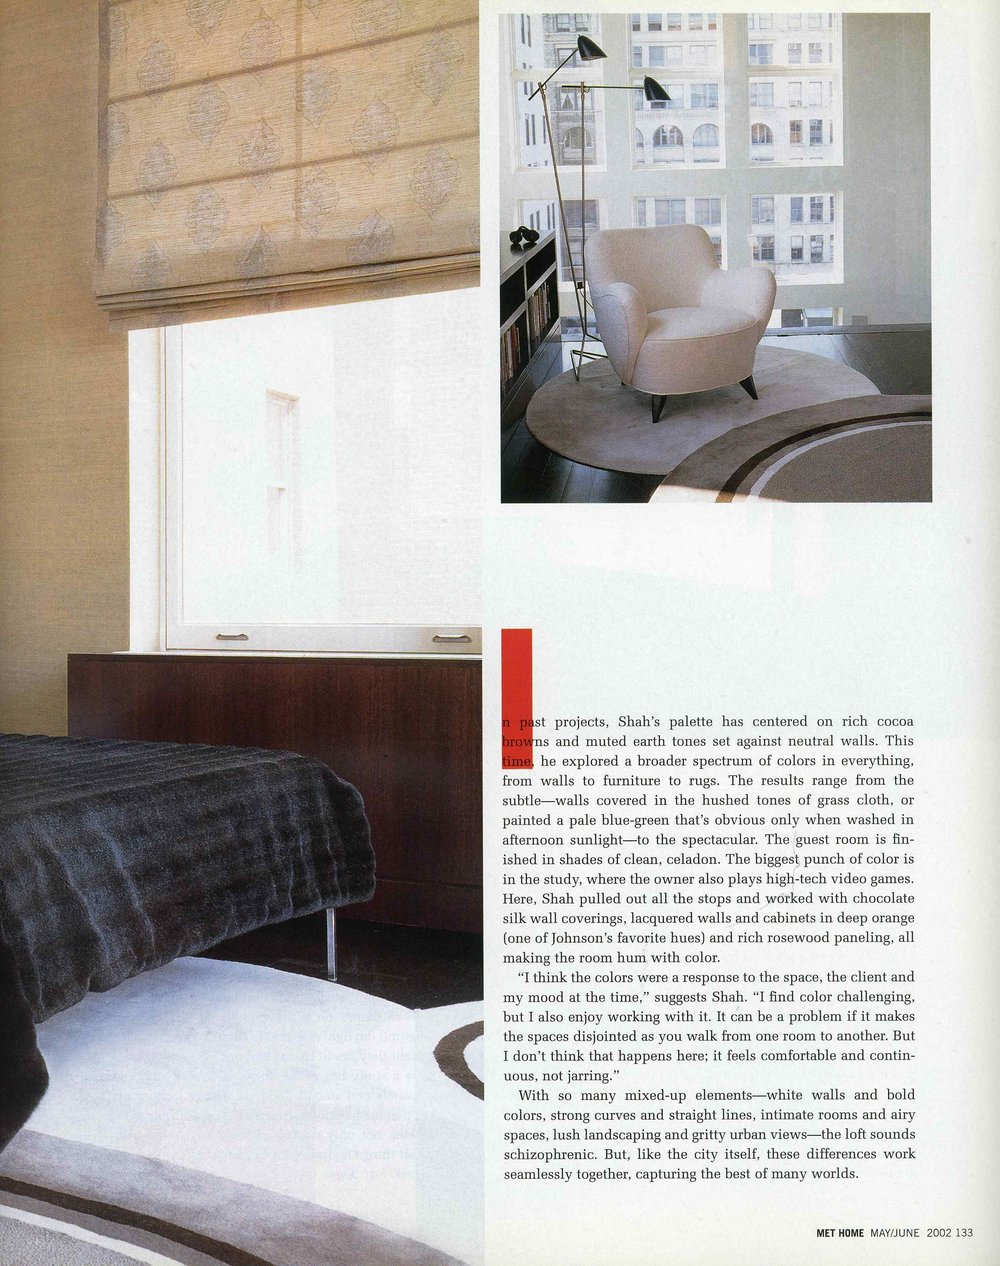 Met Home_May-June 02_Johnson Apt_Full Article_Page_7.jpg